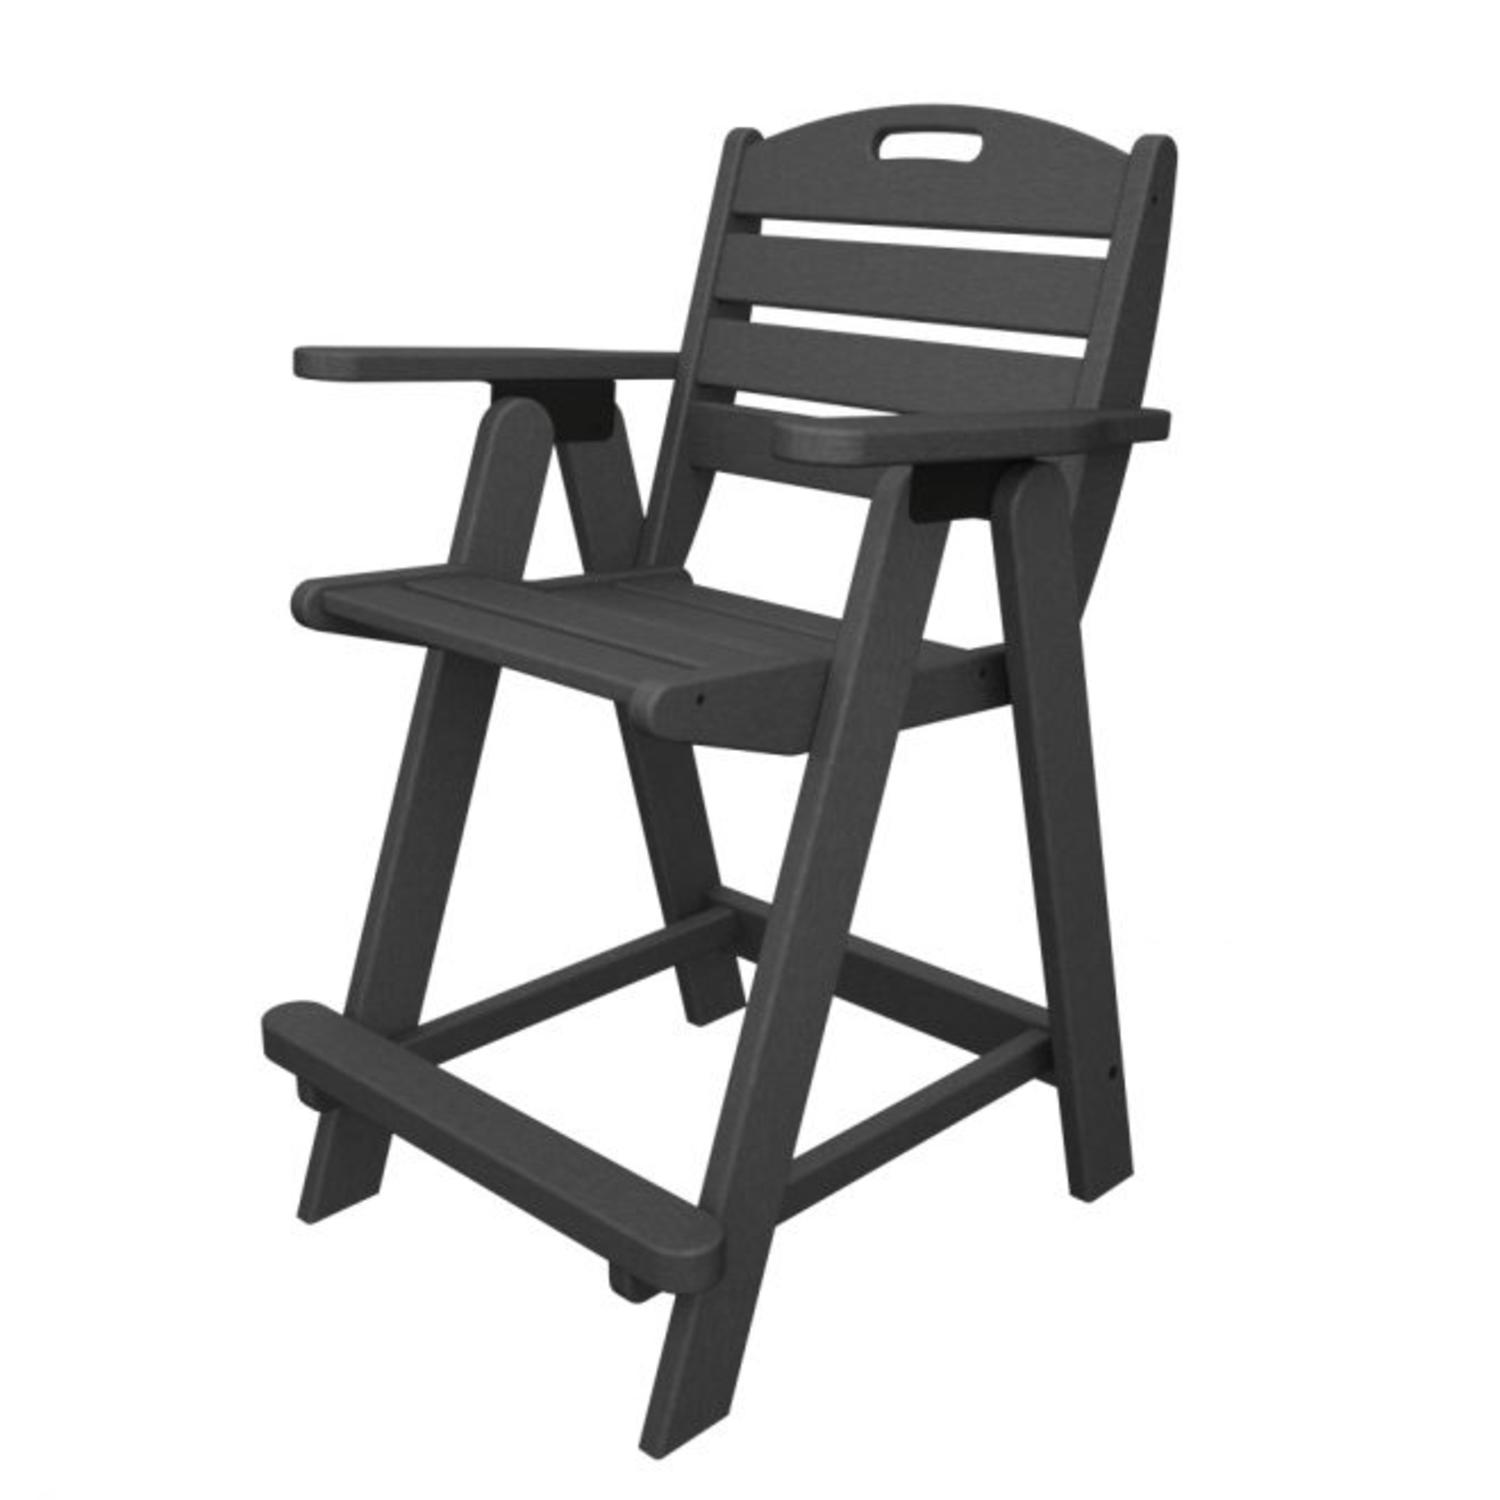 Recycled Earth-Friendly Cape Cod Outdoor Patio Counter Chair - Slate Grey